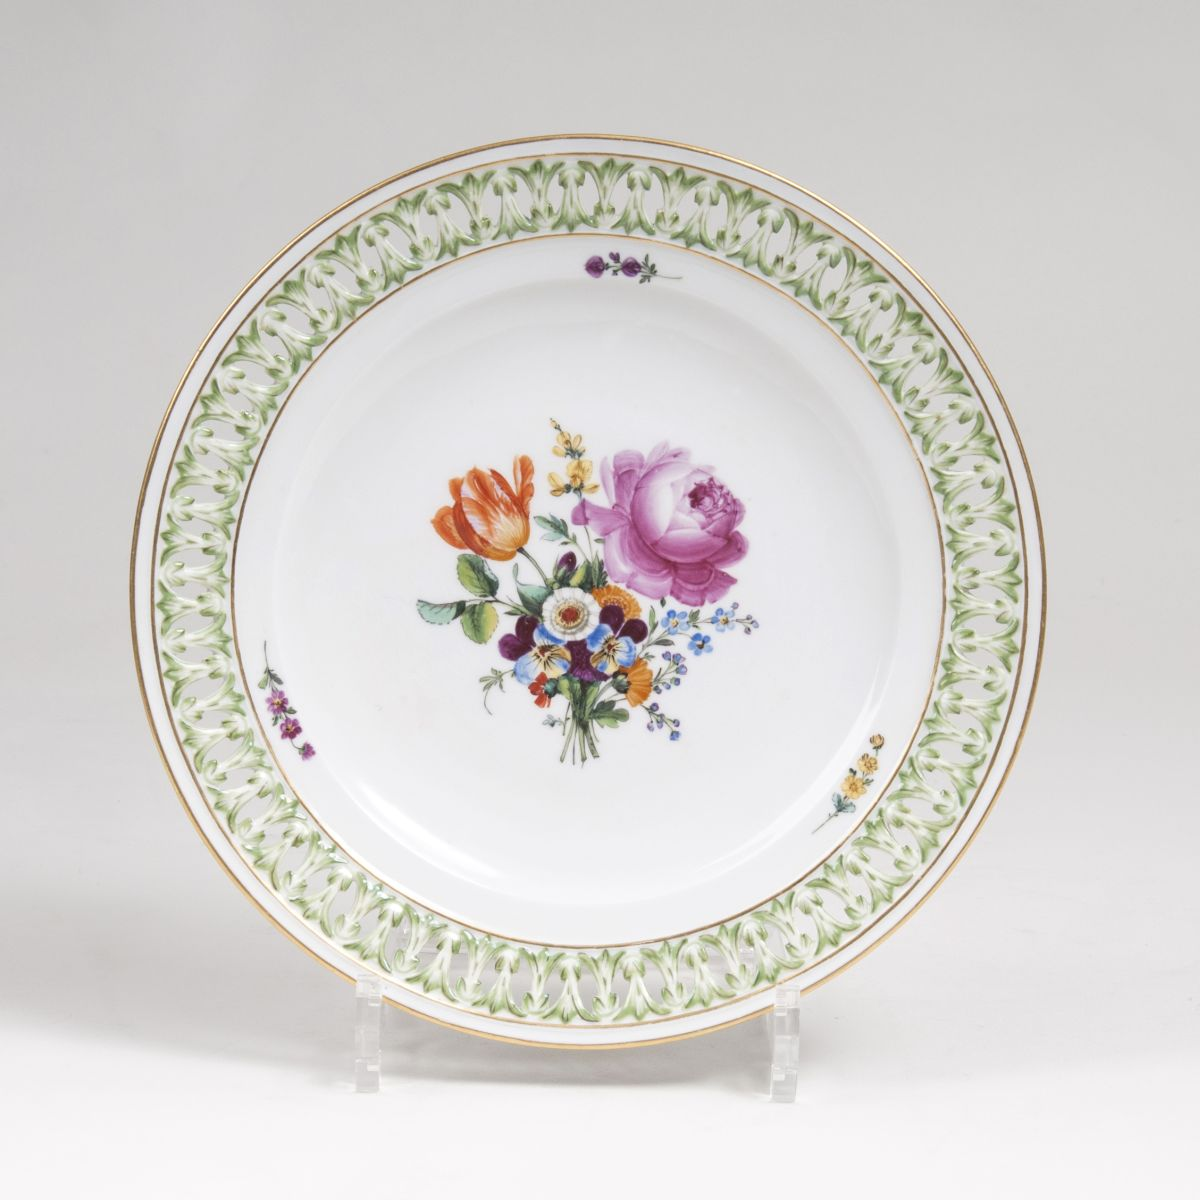 A Dessert Plate with Flower Painting